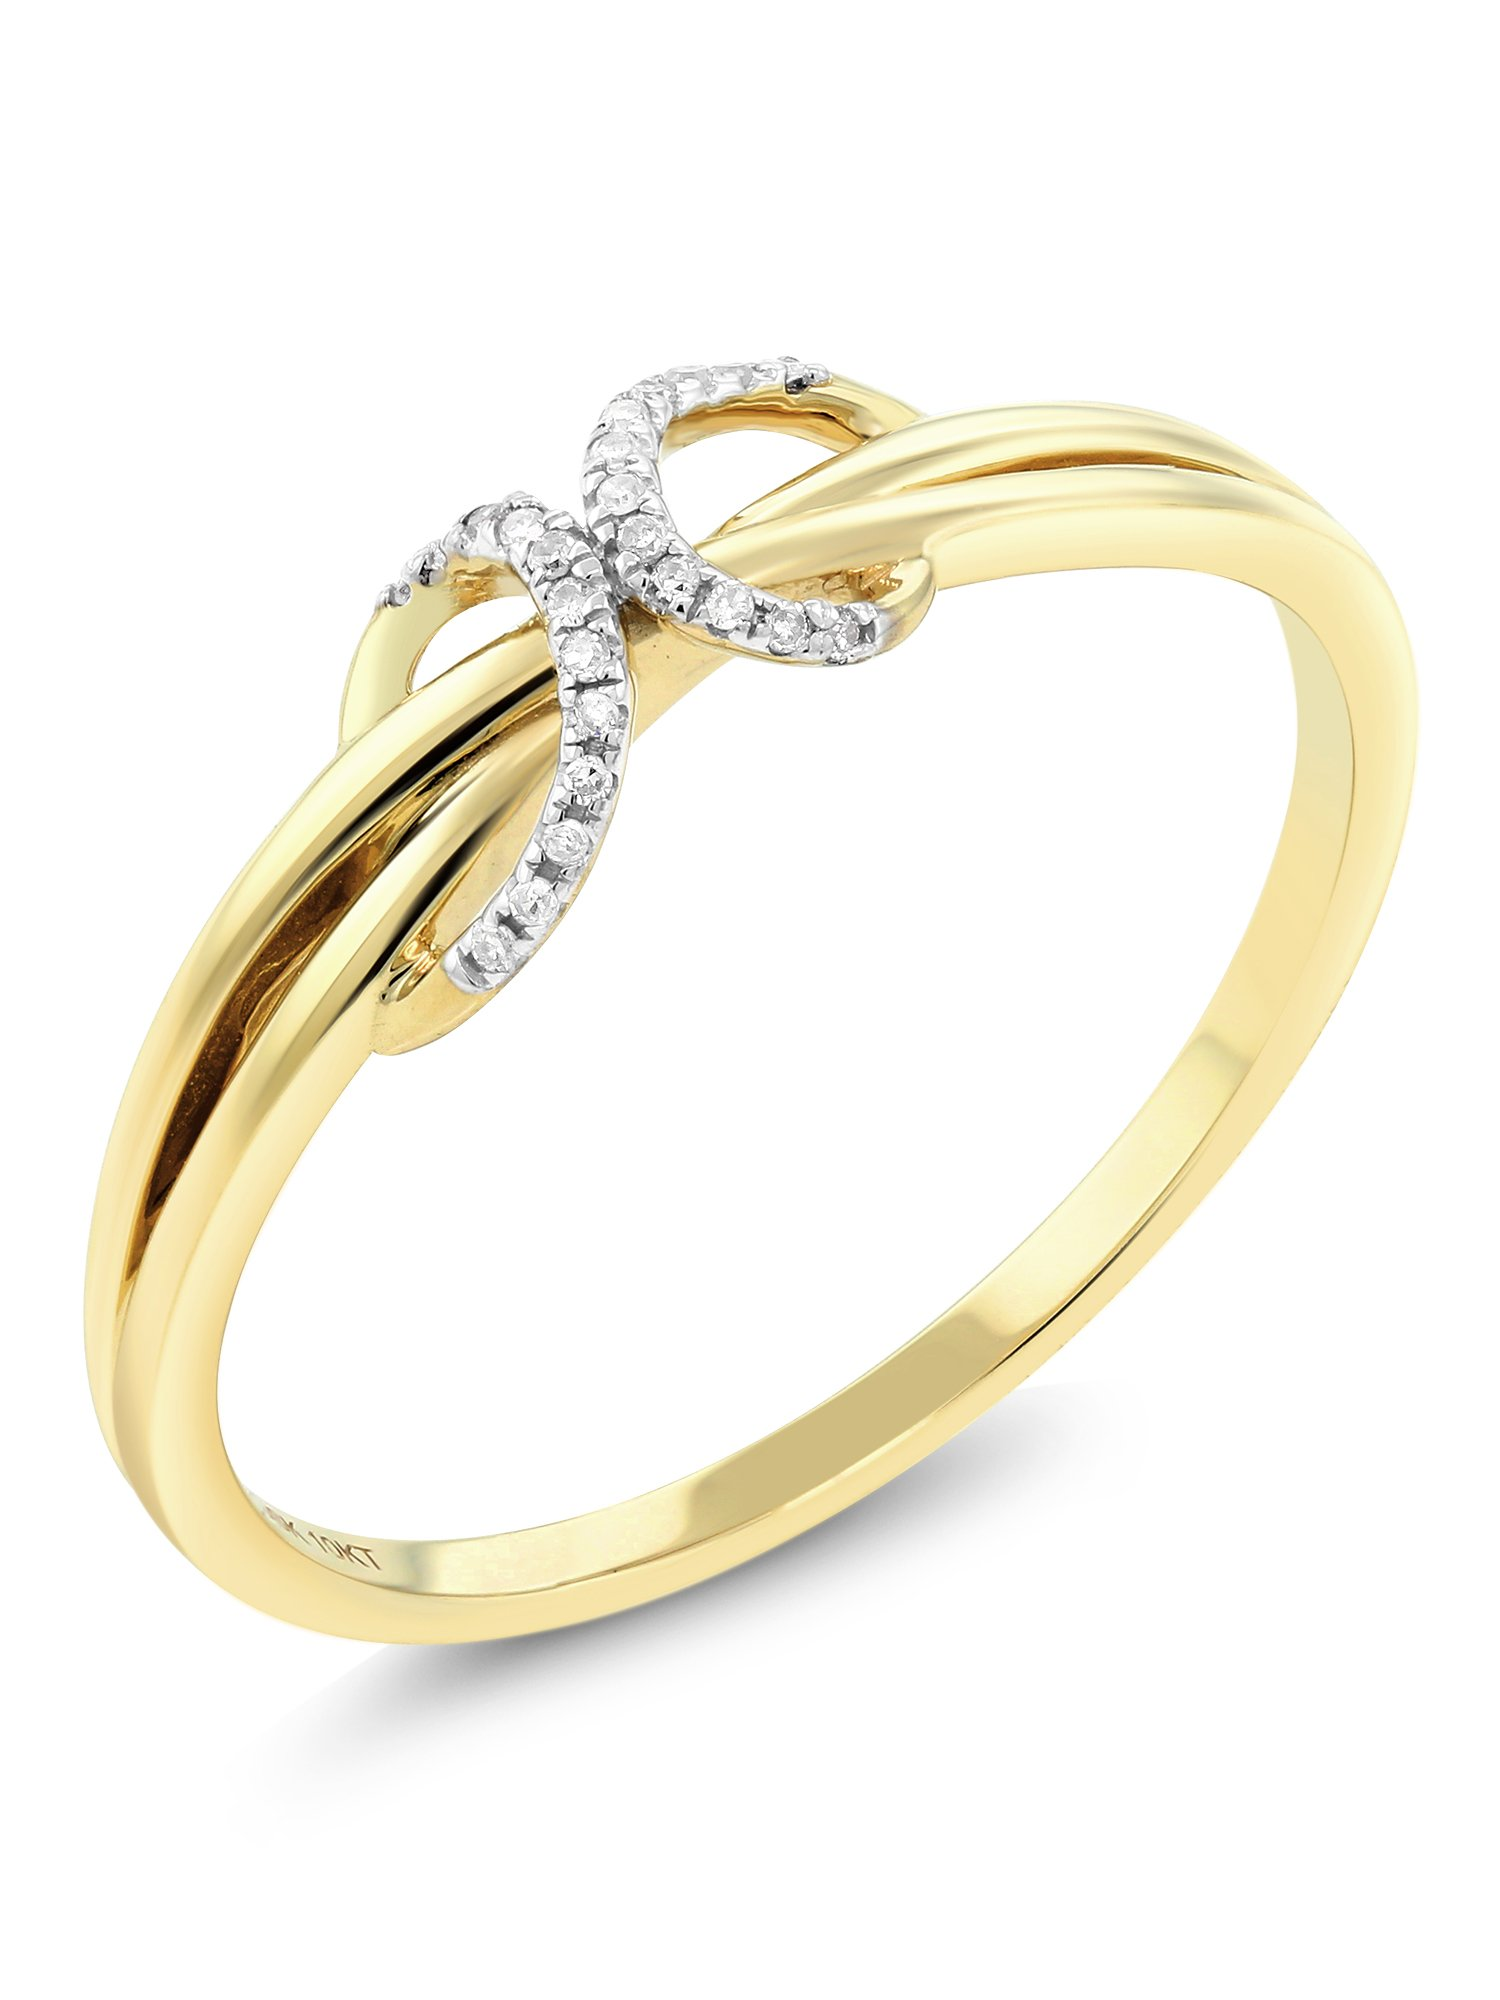 10K Solid Yellow Gold White Diamond Anniversary Wedding Band 0.036 cttw, I-J Color, I1-I2 Clarity, Ring) (Size 7)